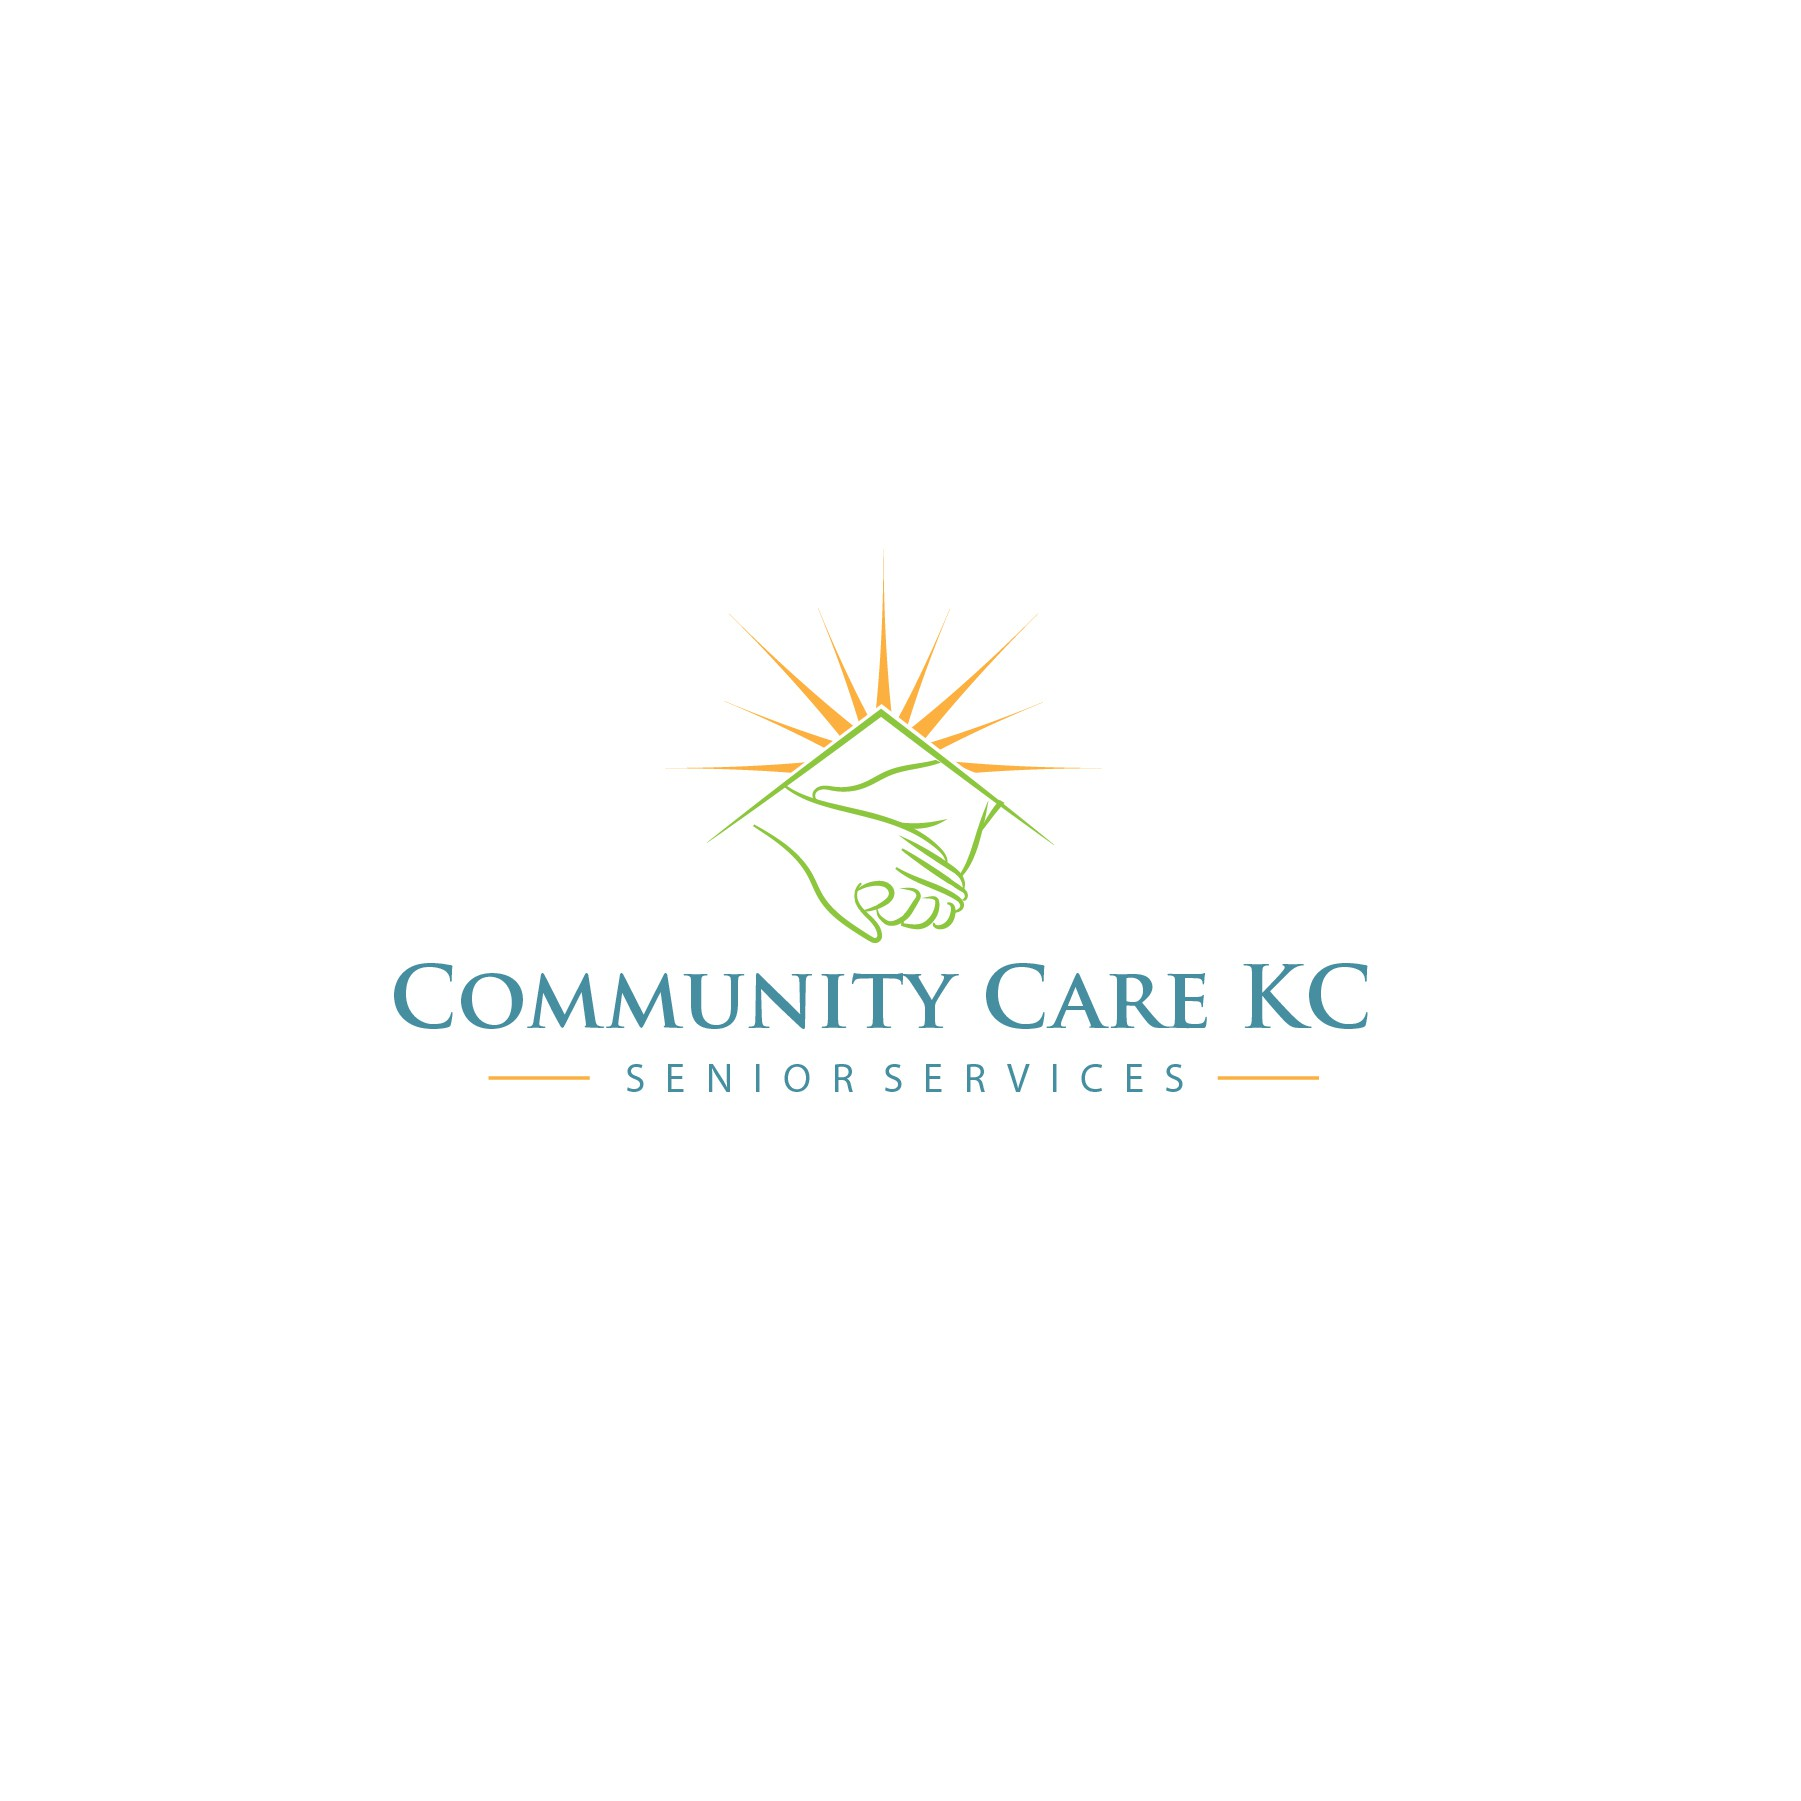 Community Care KC is a new player on the Home Care market and needs an eye catching logo